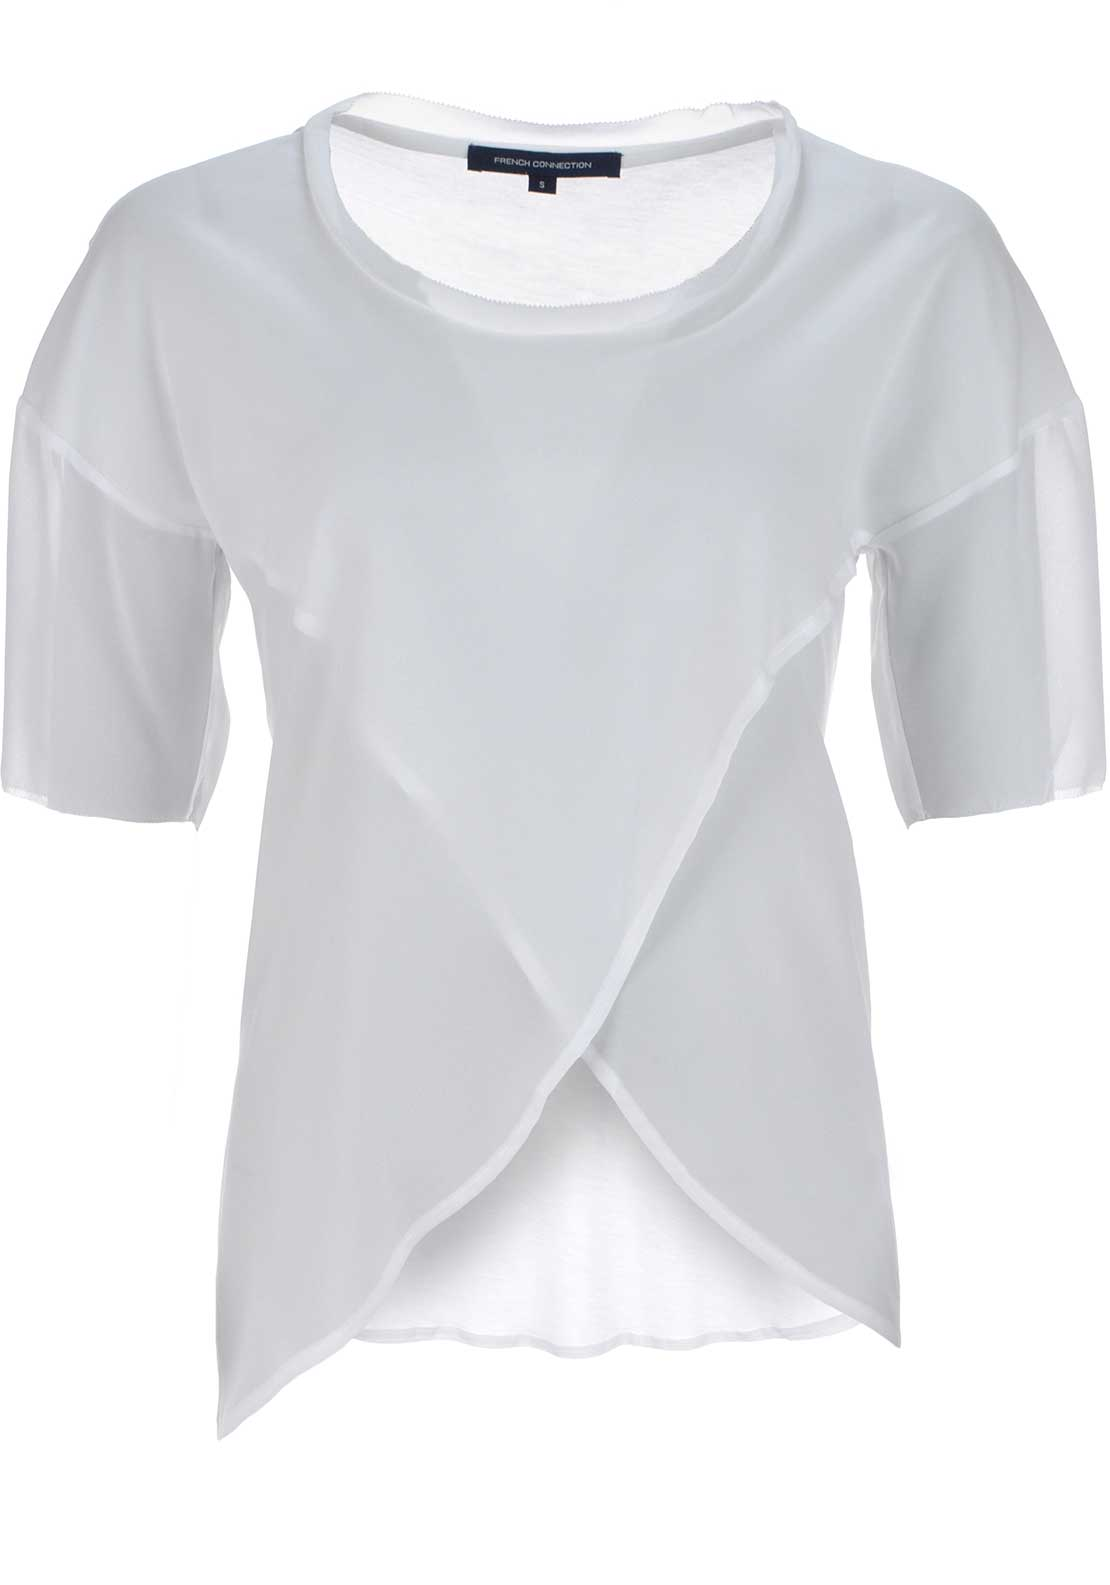 French Connection Womens Semi Sheer Chiffon Wrap over Top, Summer White